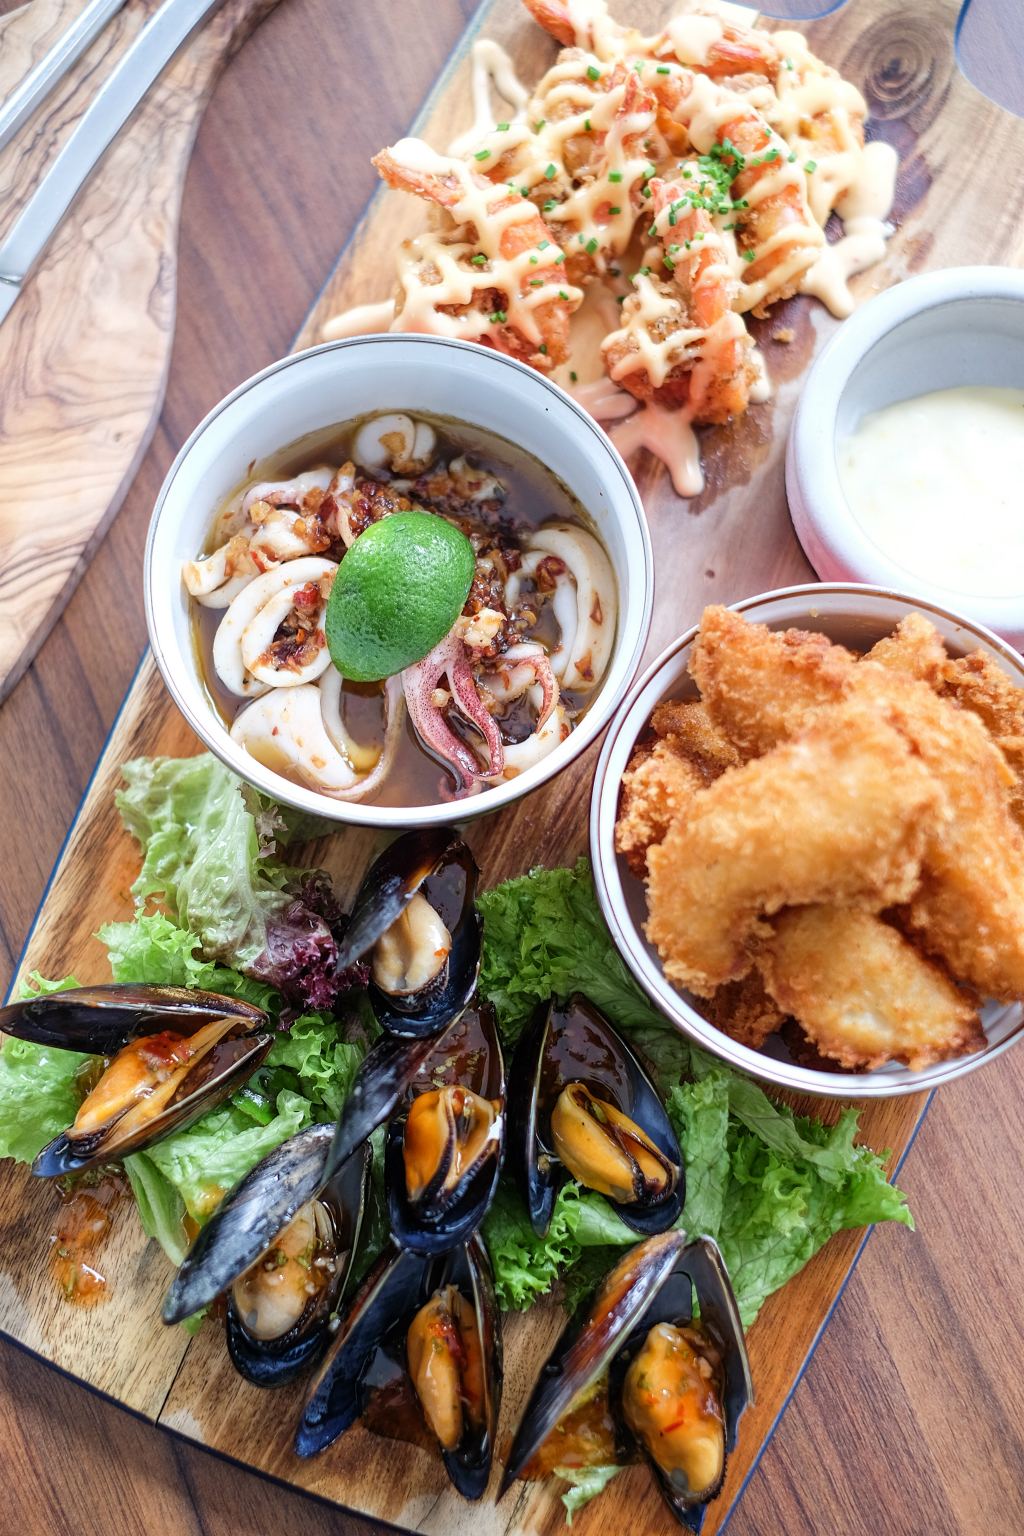 Lighthouse Bistro & Bar: Fishermen's Board, a seafood platter of Atlantic prawns, calamari, black mussels and deep-fried chunks of dory accompanied with a light-whipped Orange Mayonnaise and a House Salad